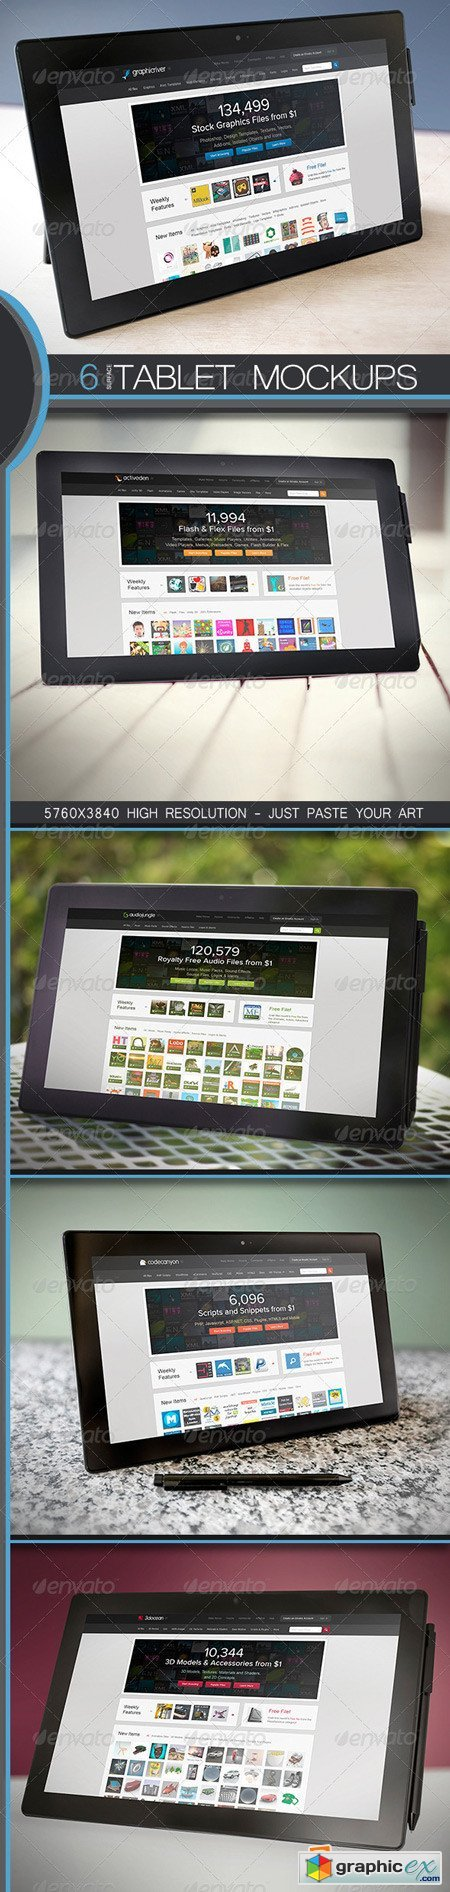 6 Surface Pro Tablet PC Mock-Ups